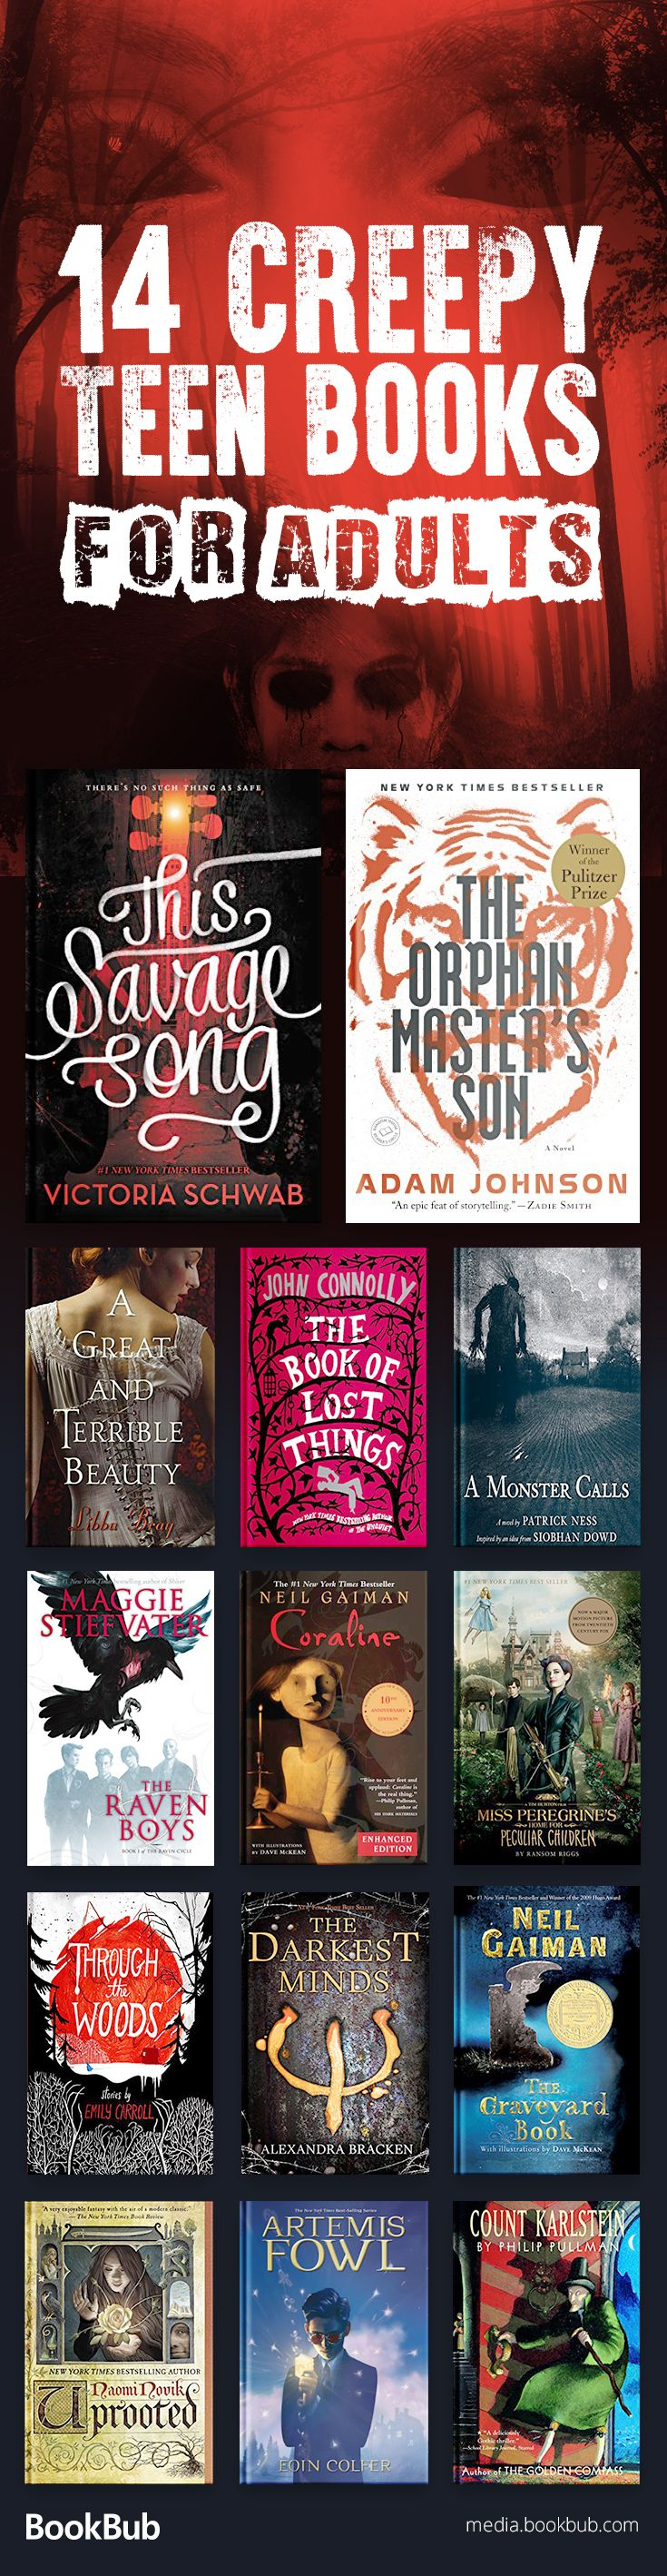 14 creepy young adult books to read. These books for teens include bestselling series and great fiction.